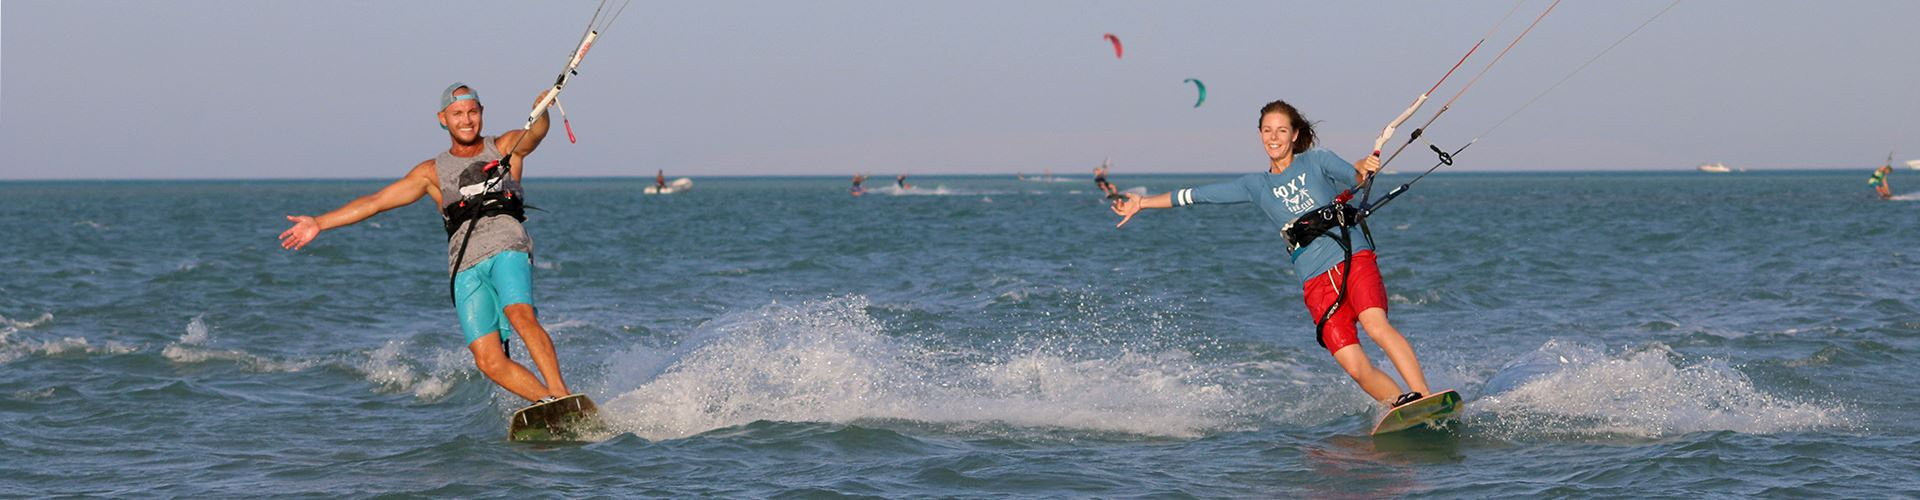 Gogo, and Martina - The Owners of Nomad Kite Events; a professional Kitesurfing school based in El Gouna, Egypt.